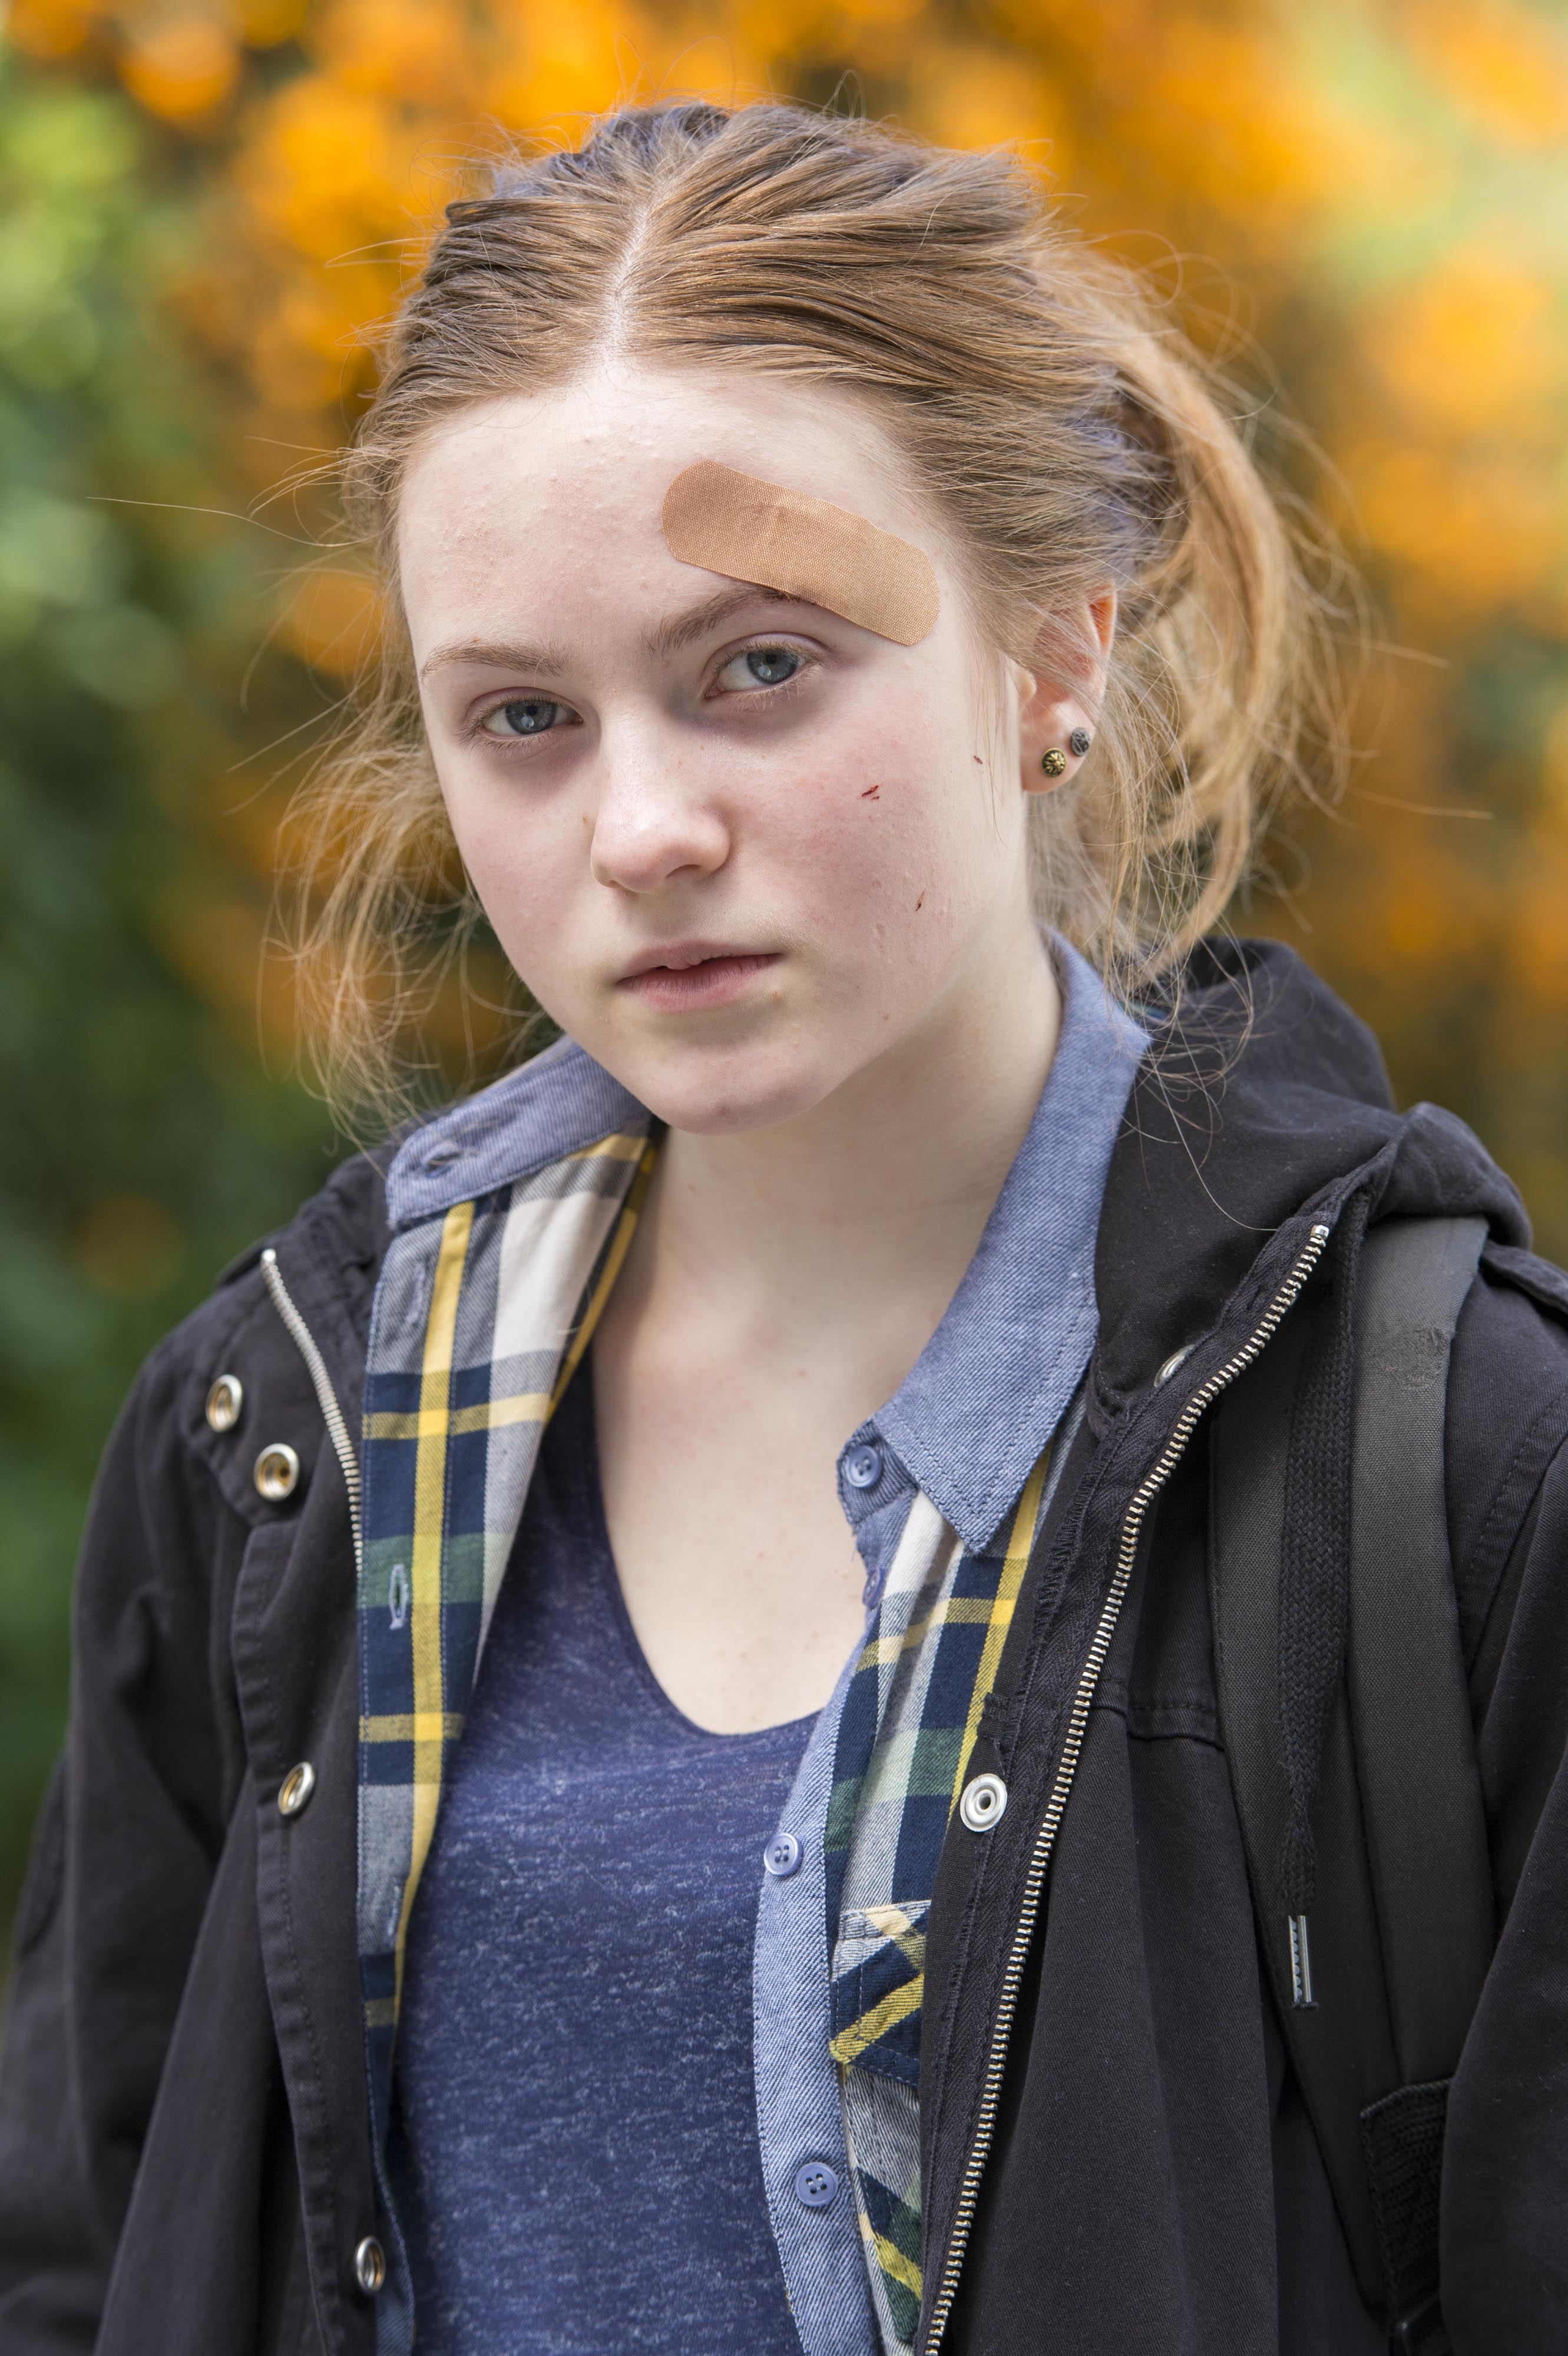 Hollyoaks casts Persephone Swales-Dawson as new teenage character Nico